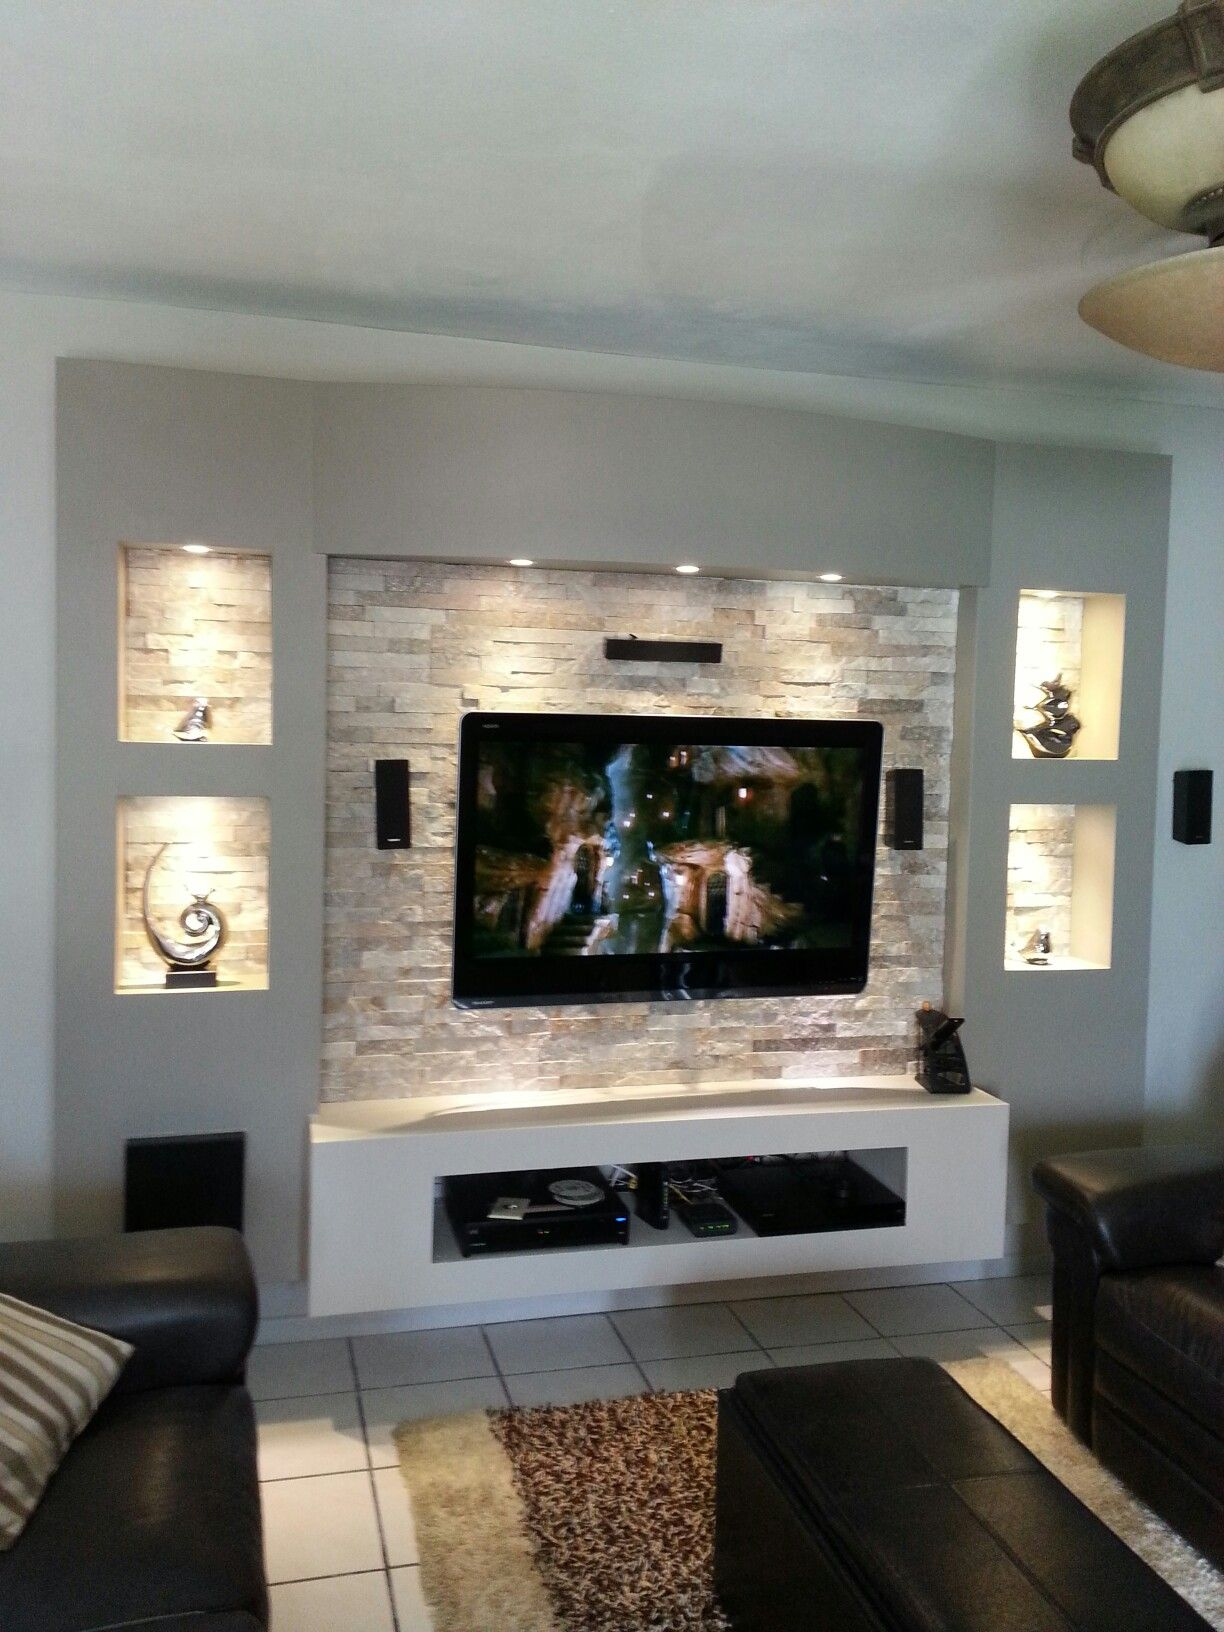 innovaci n tv unit my own projects in 2018 room living room living room tv. Black Bedroom Furniture Sets. Home Design Ideas